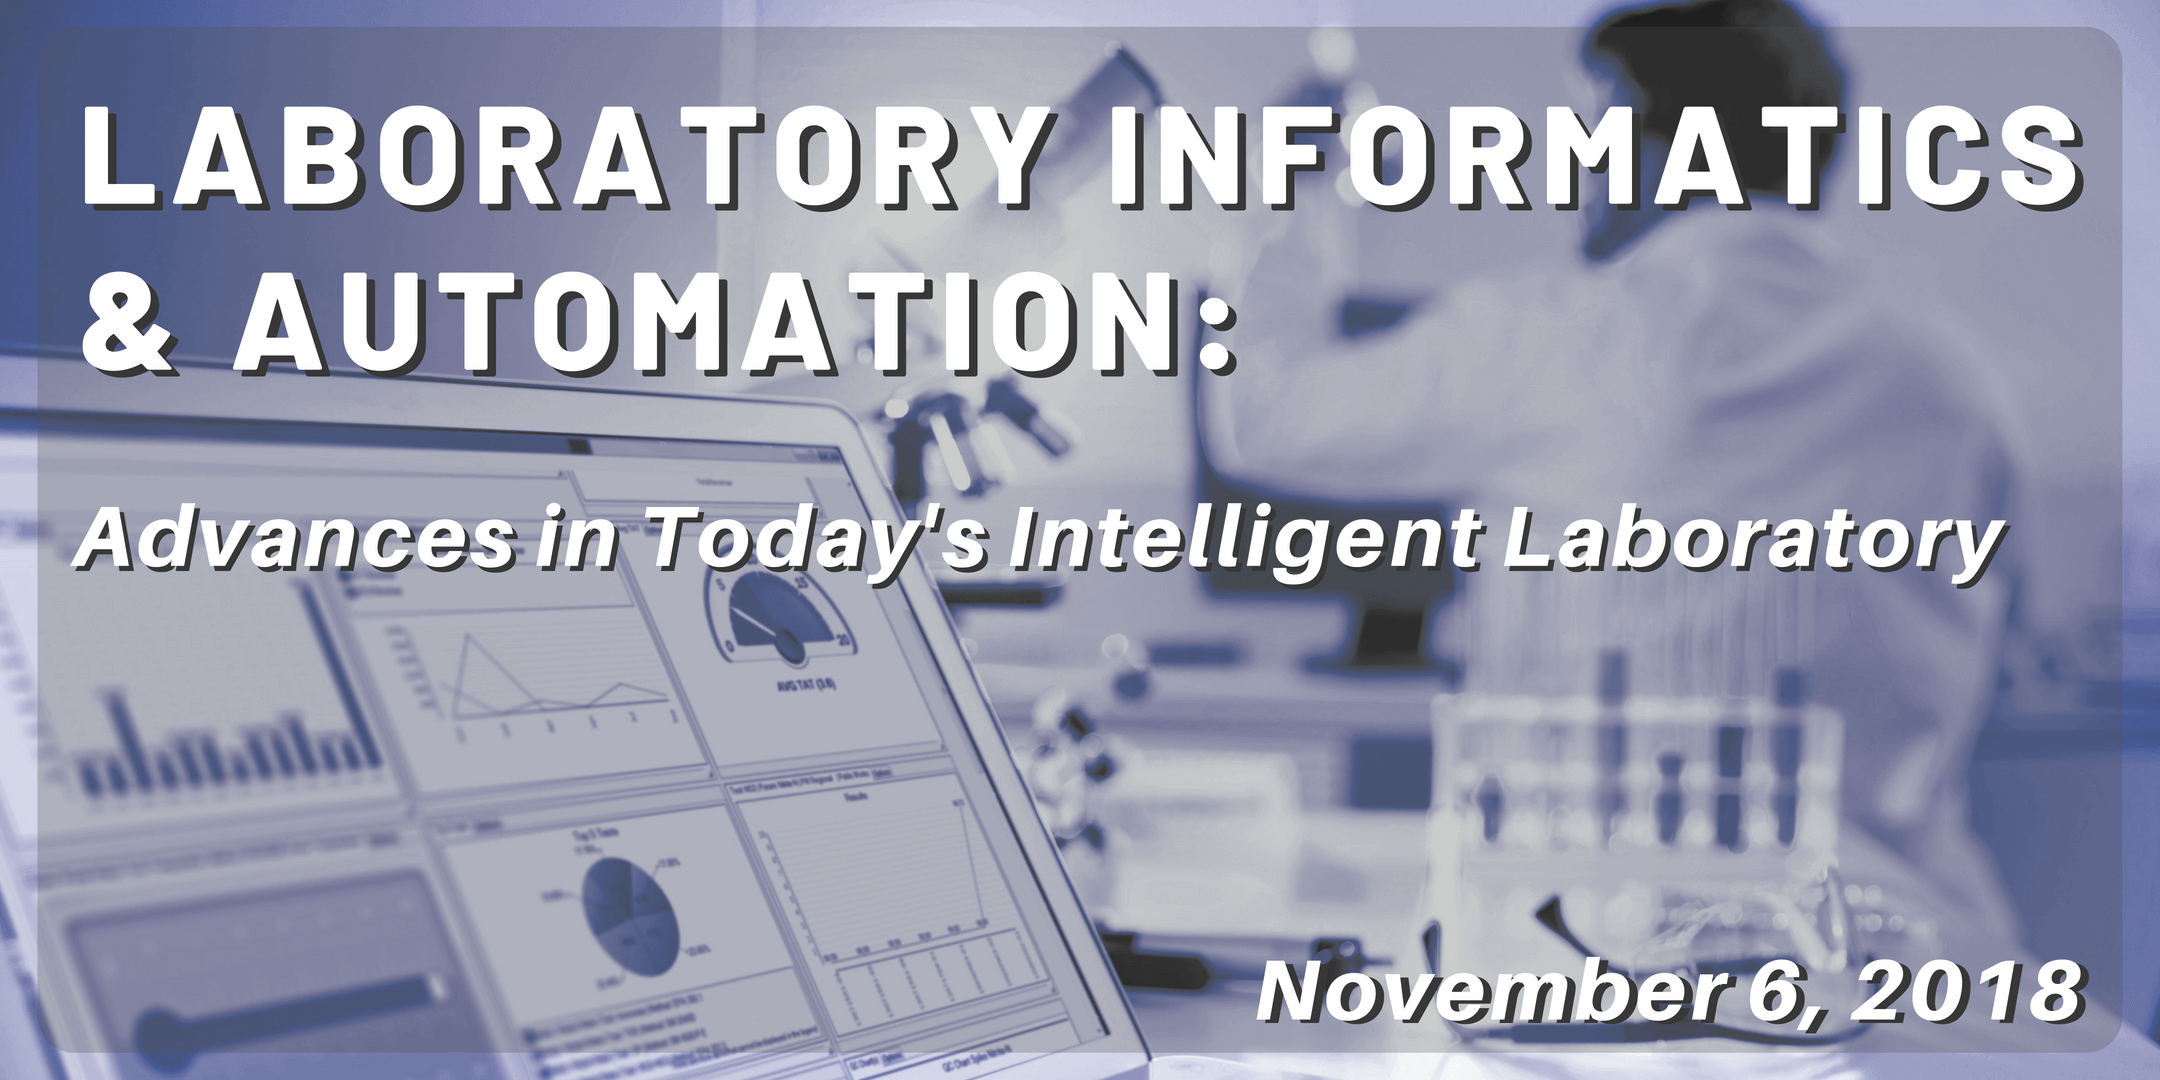 Laboratory Informatics and Automation: Advances in Today's Intelligent Laboratory event image